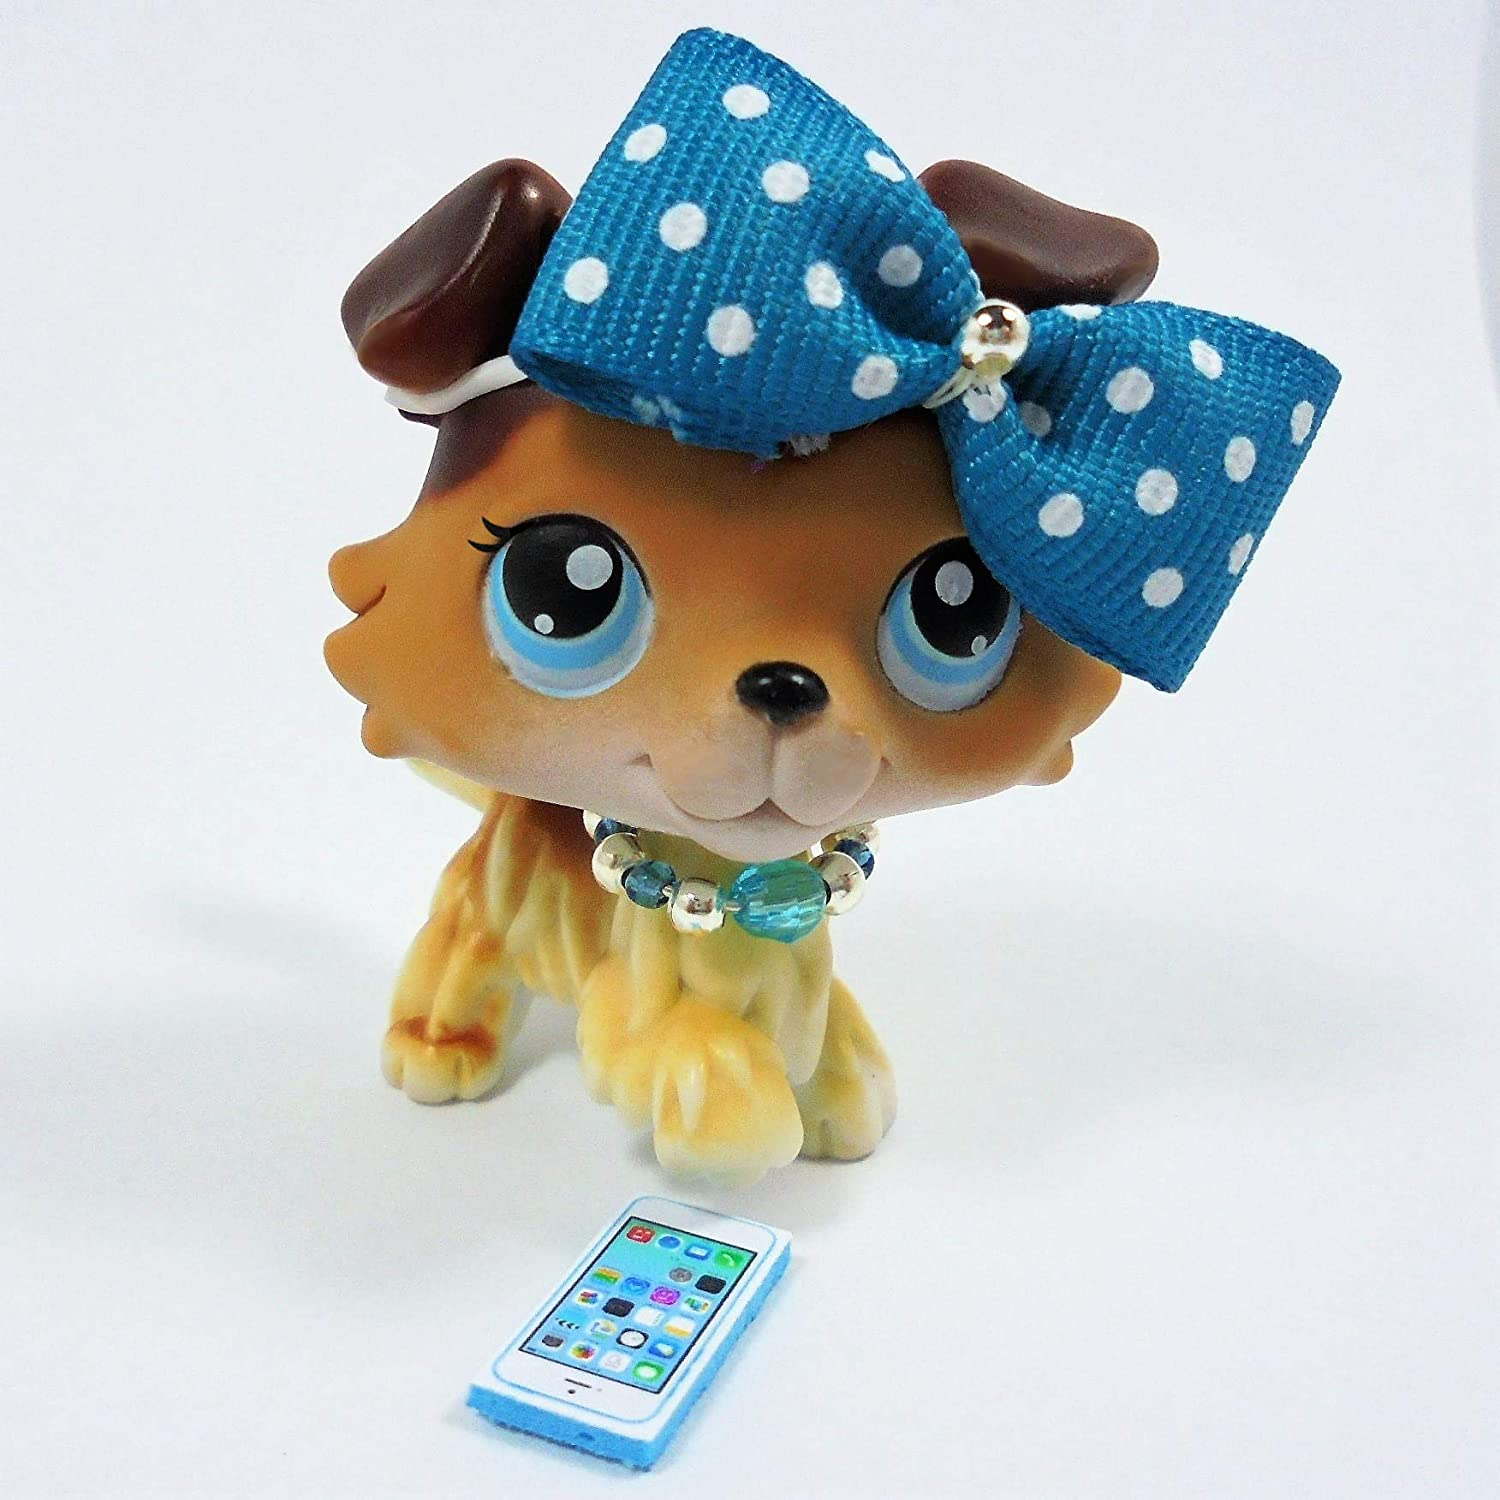 Littlest pet shop accessories LPS clothes 1bow 1necklace 1phone. CAT NOT INCLUDED